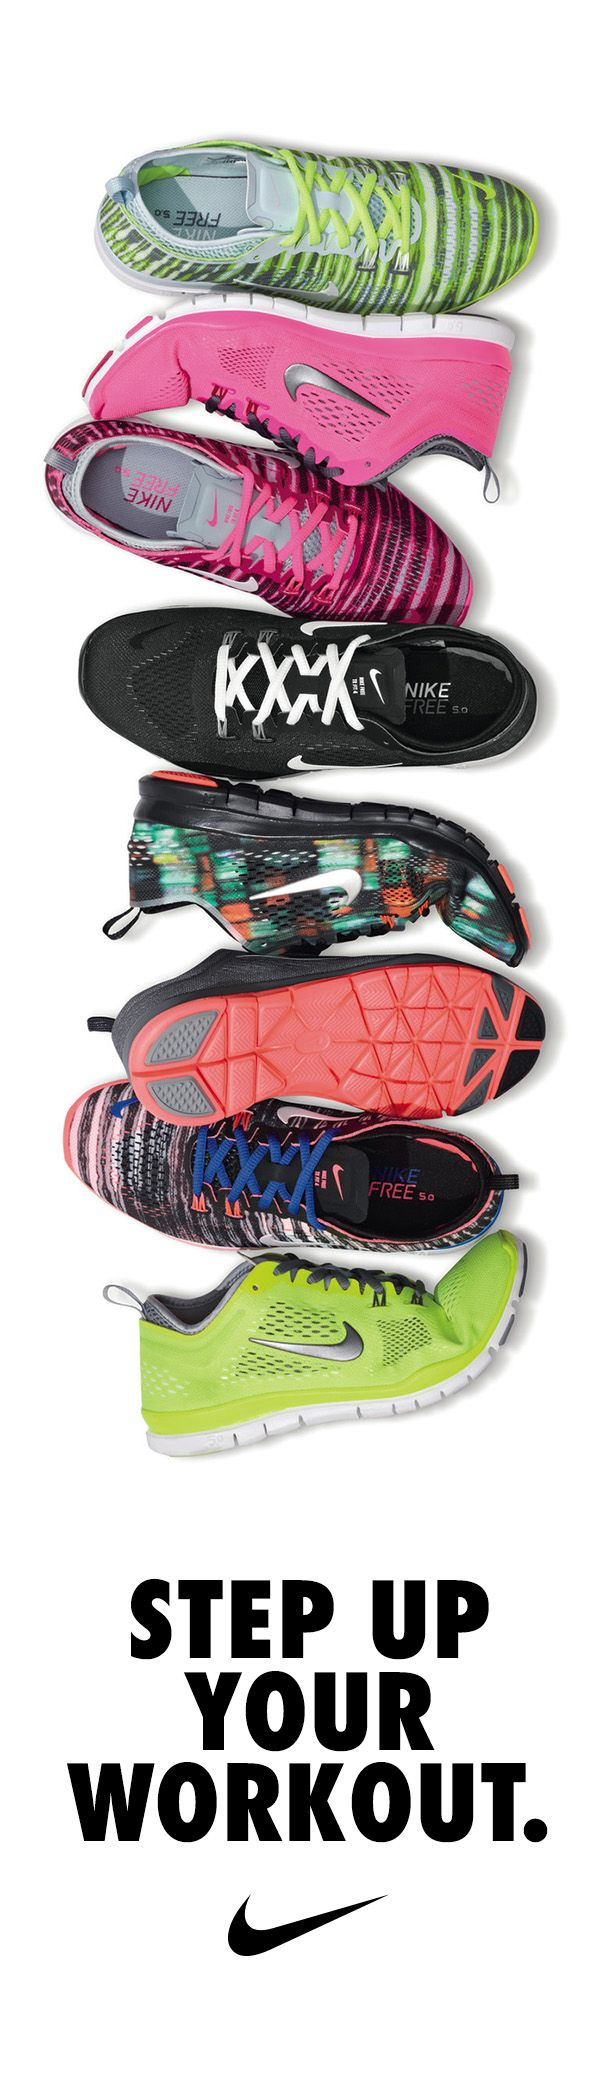 Super Cheap! Sports Nike shoes outlet,#Nike #shoes only $22!! Press picture link get it immediately! not long time for cheapest